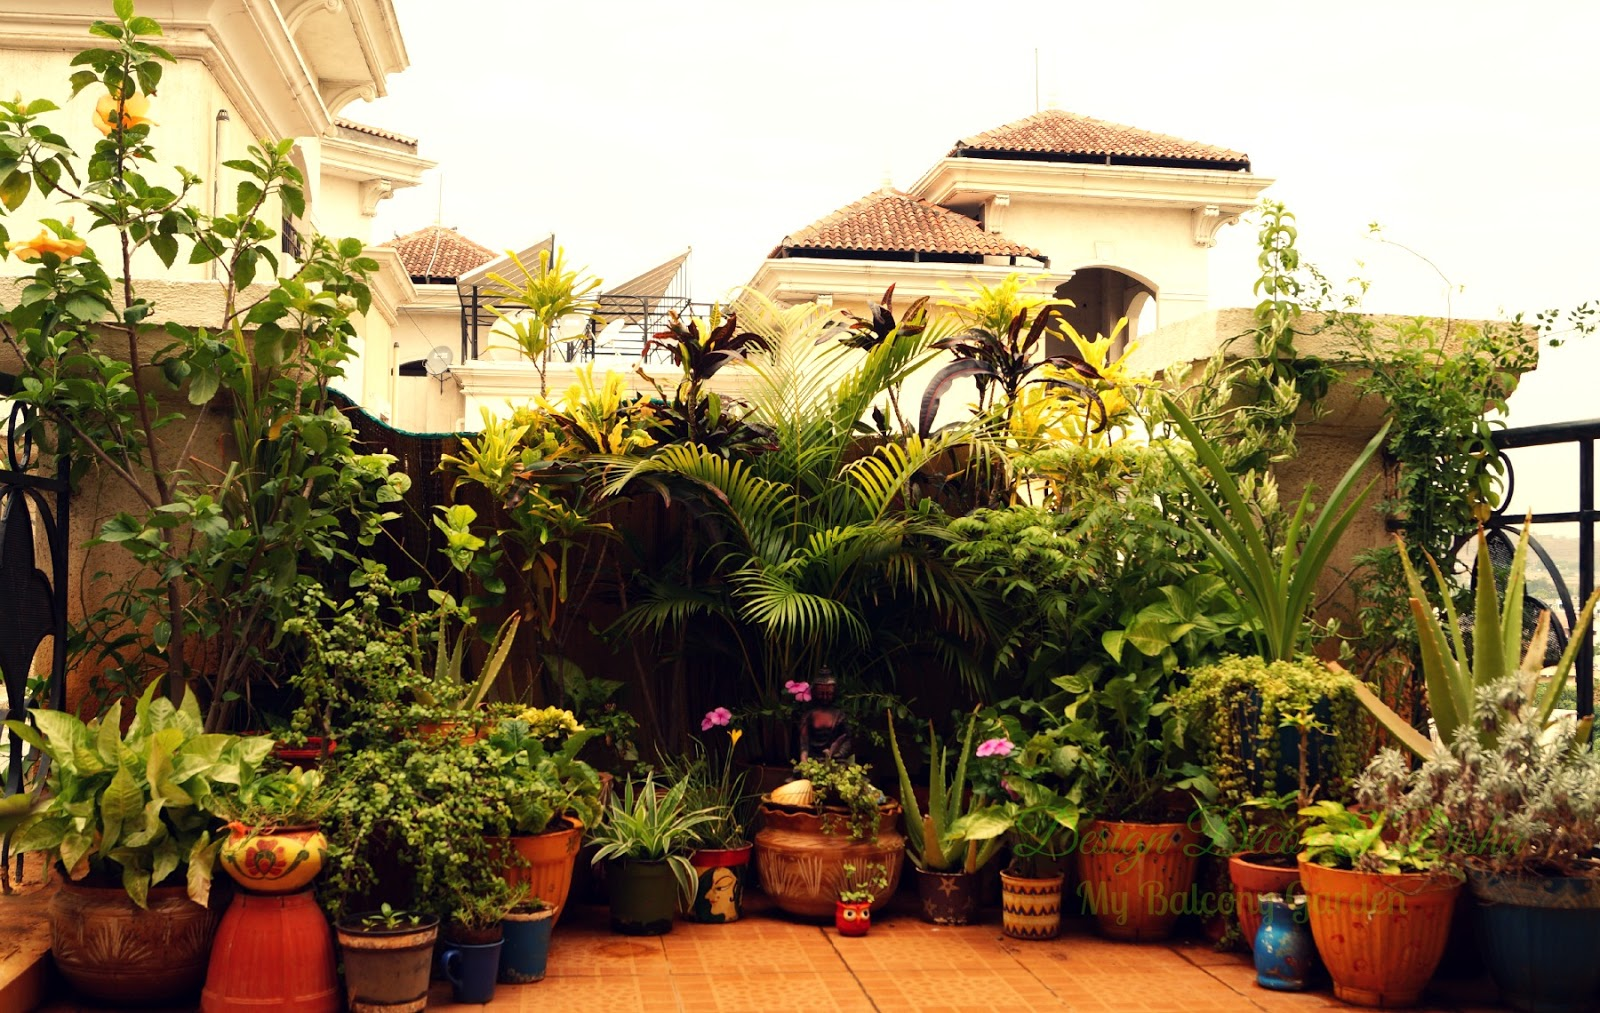 Terrace Garden Ideas Bangalore design decor & disha: my balcony garden makeover